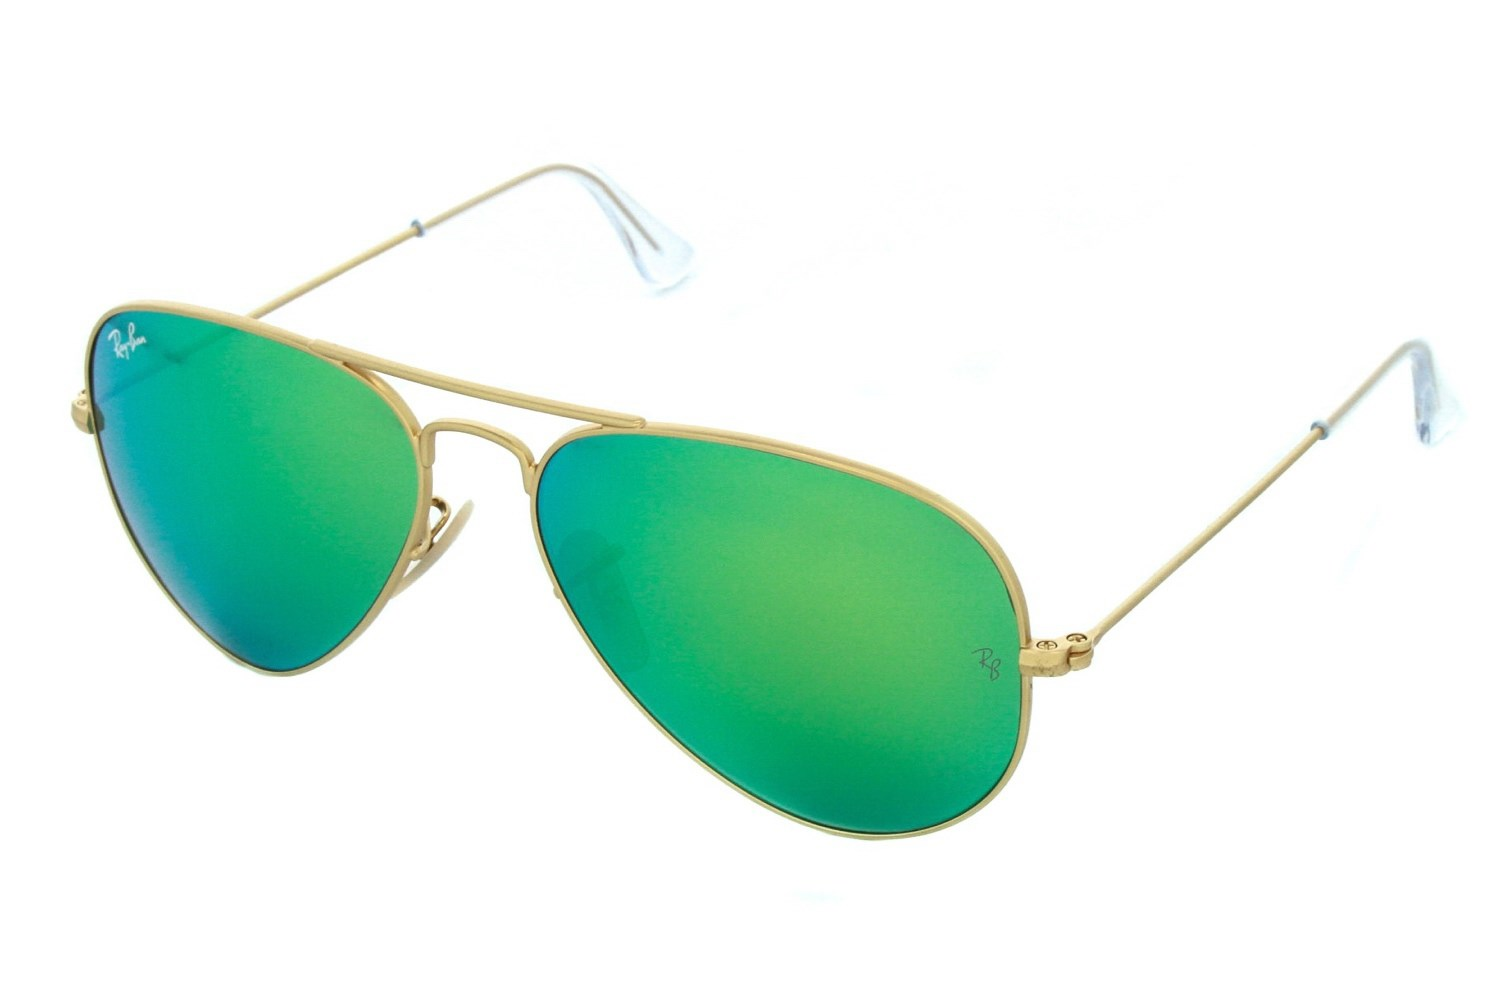 cheap authentic ray ban sunglasses  ray-ban online